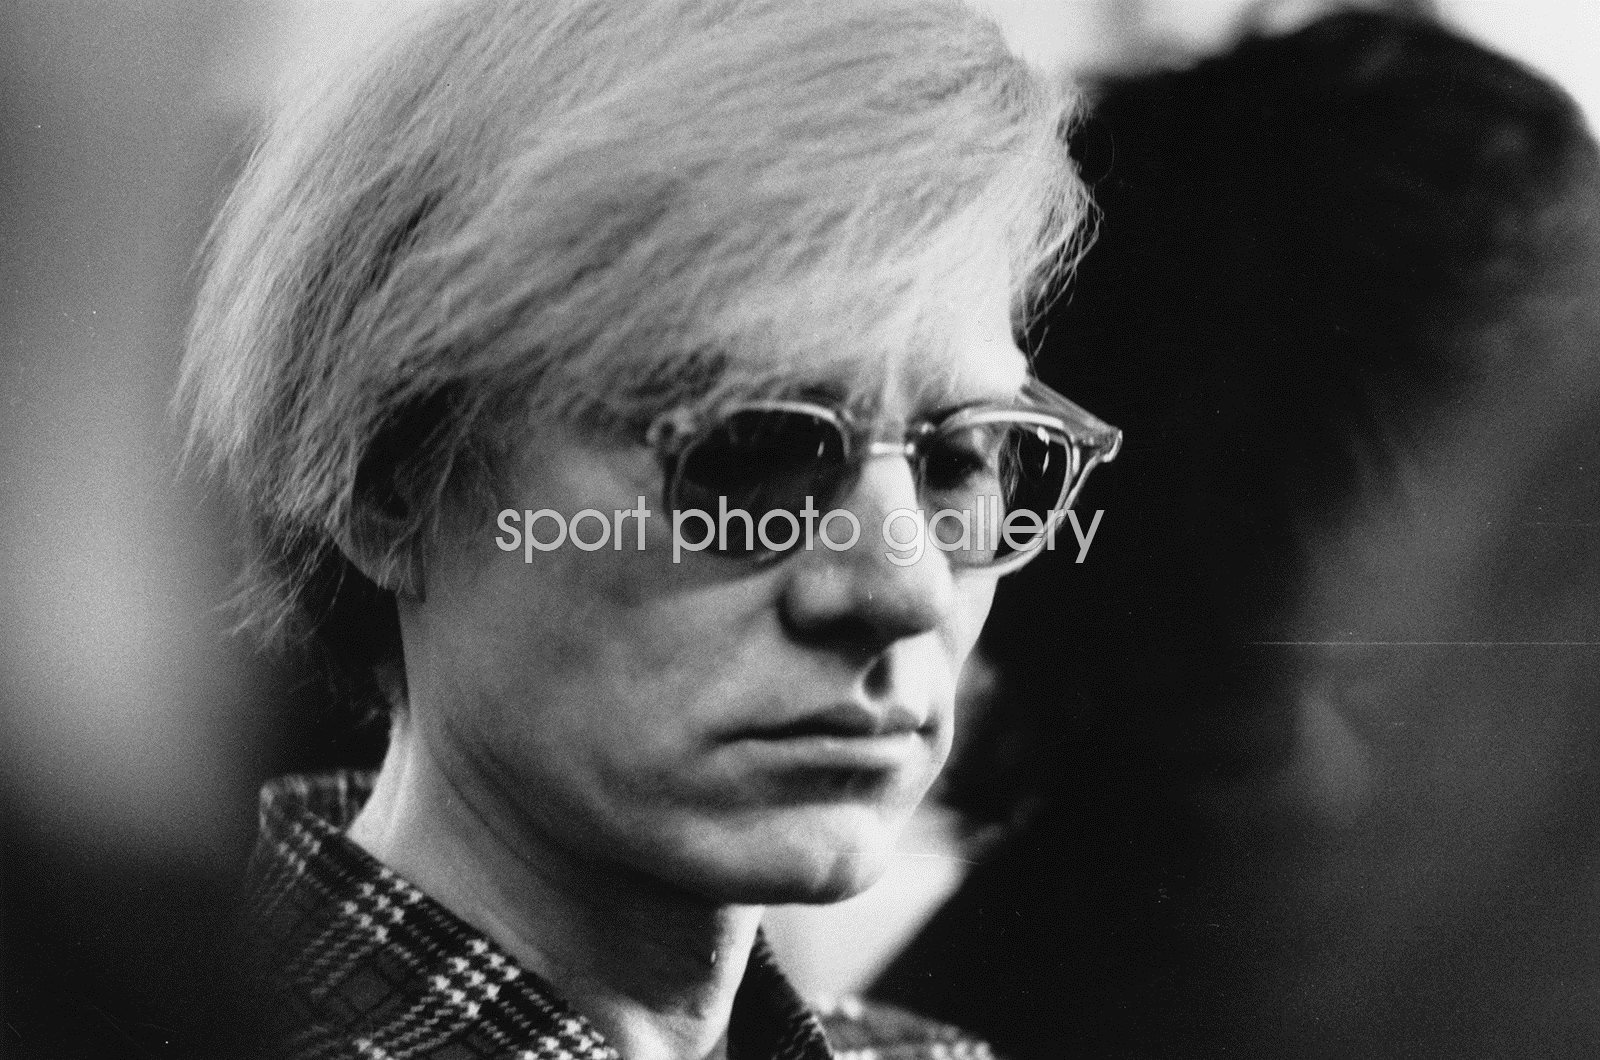 Andy Warhol American pop artist and film maker 1971